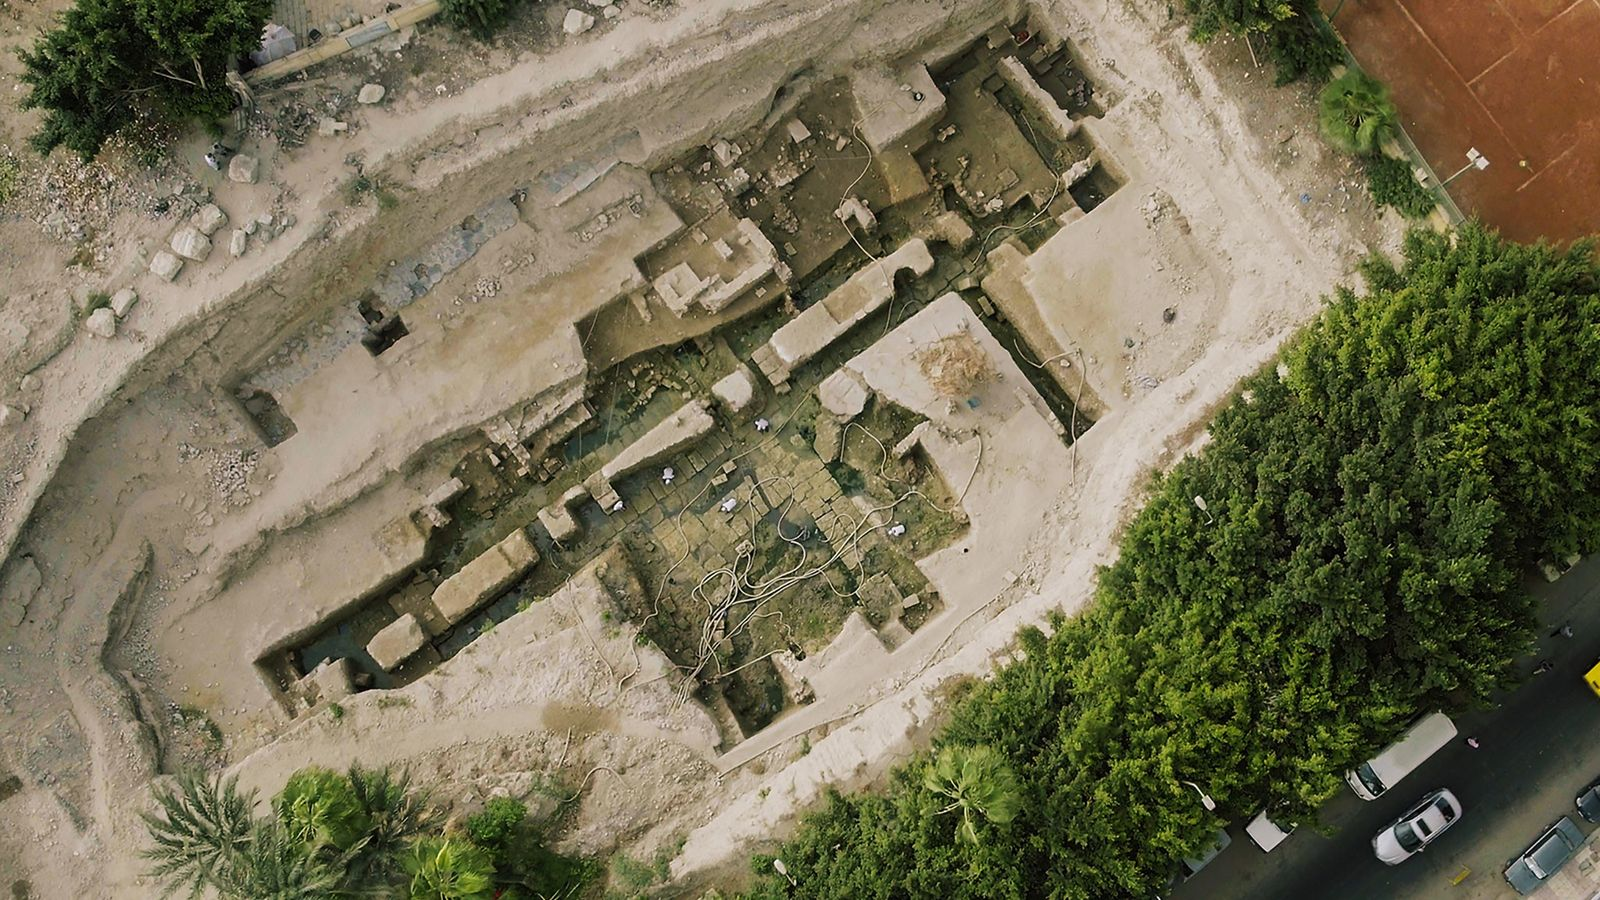 Buried and forgotten for centuries, the foundation walls of a monumental building dating to the era ...